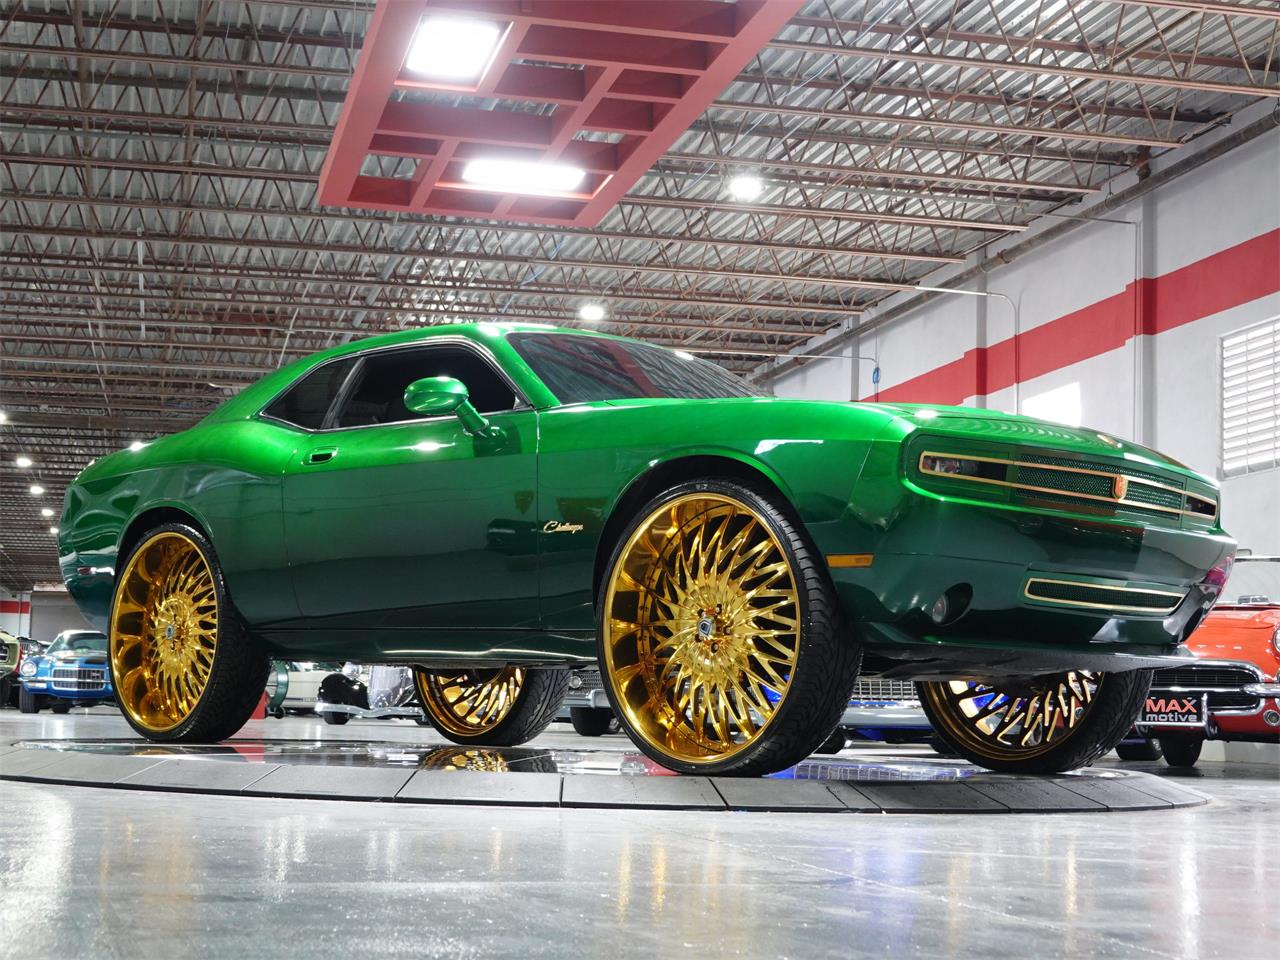 for sale 2009 dodge challenger in pittsburgh, pennsylvania cars - pittsburgh, pa at geebo